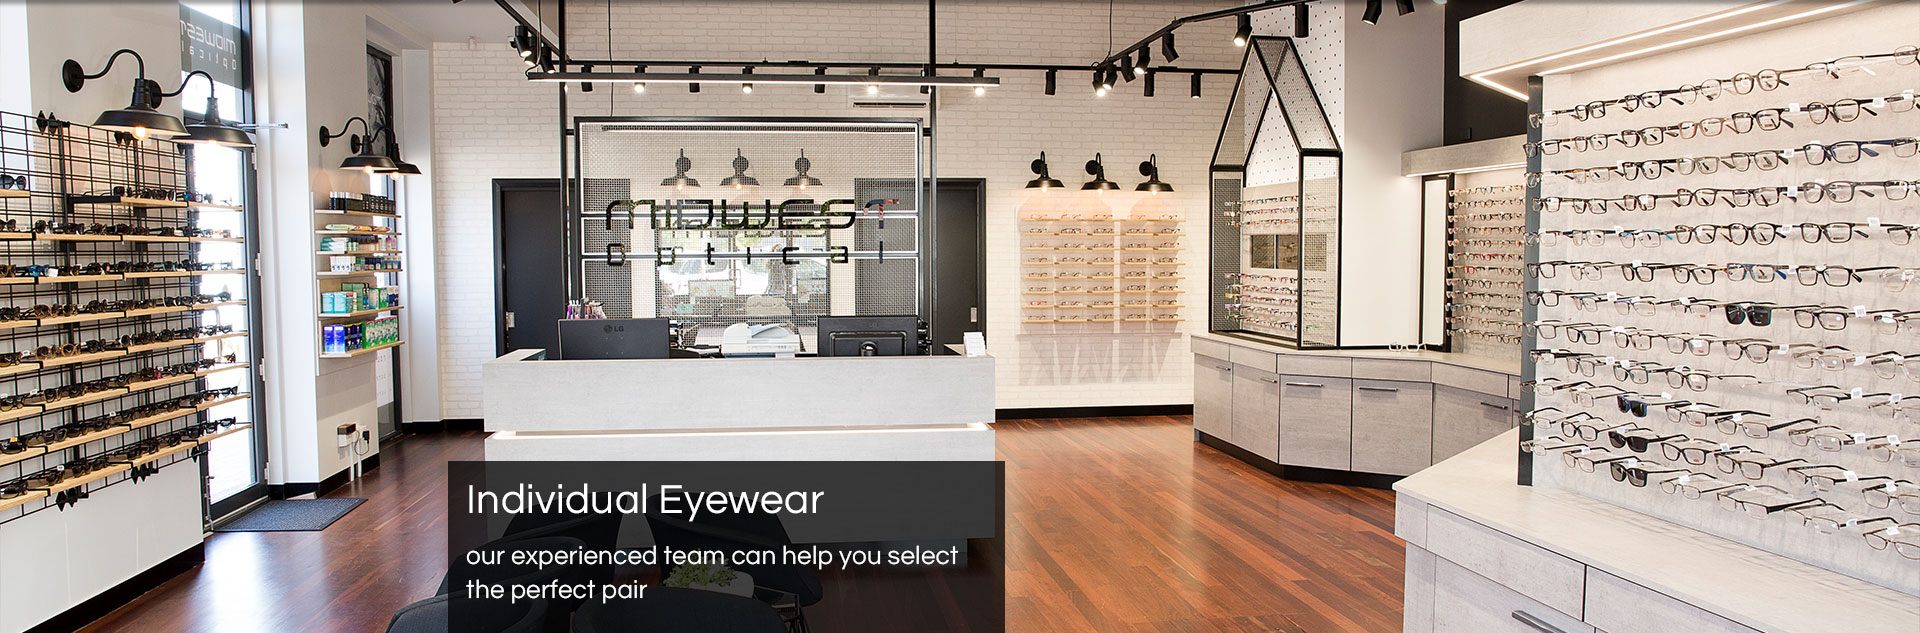 Individual eyewear - let our experienced team help you select the perfect pair